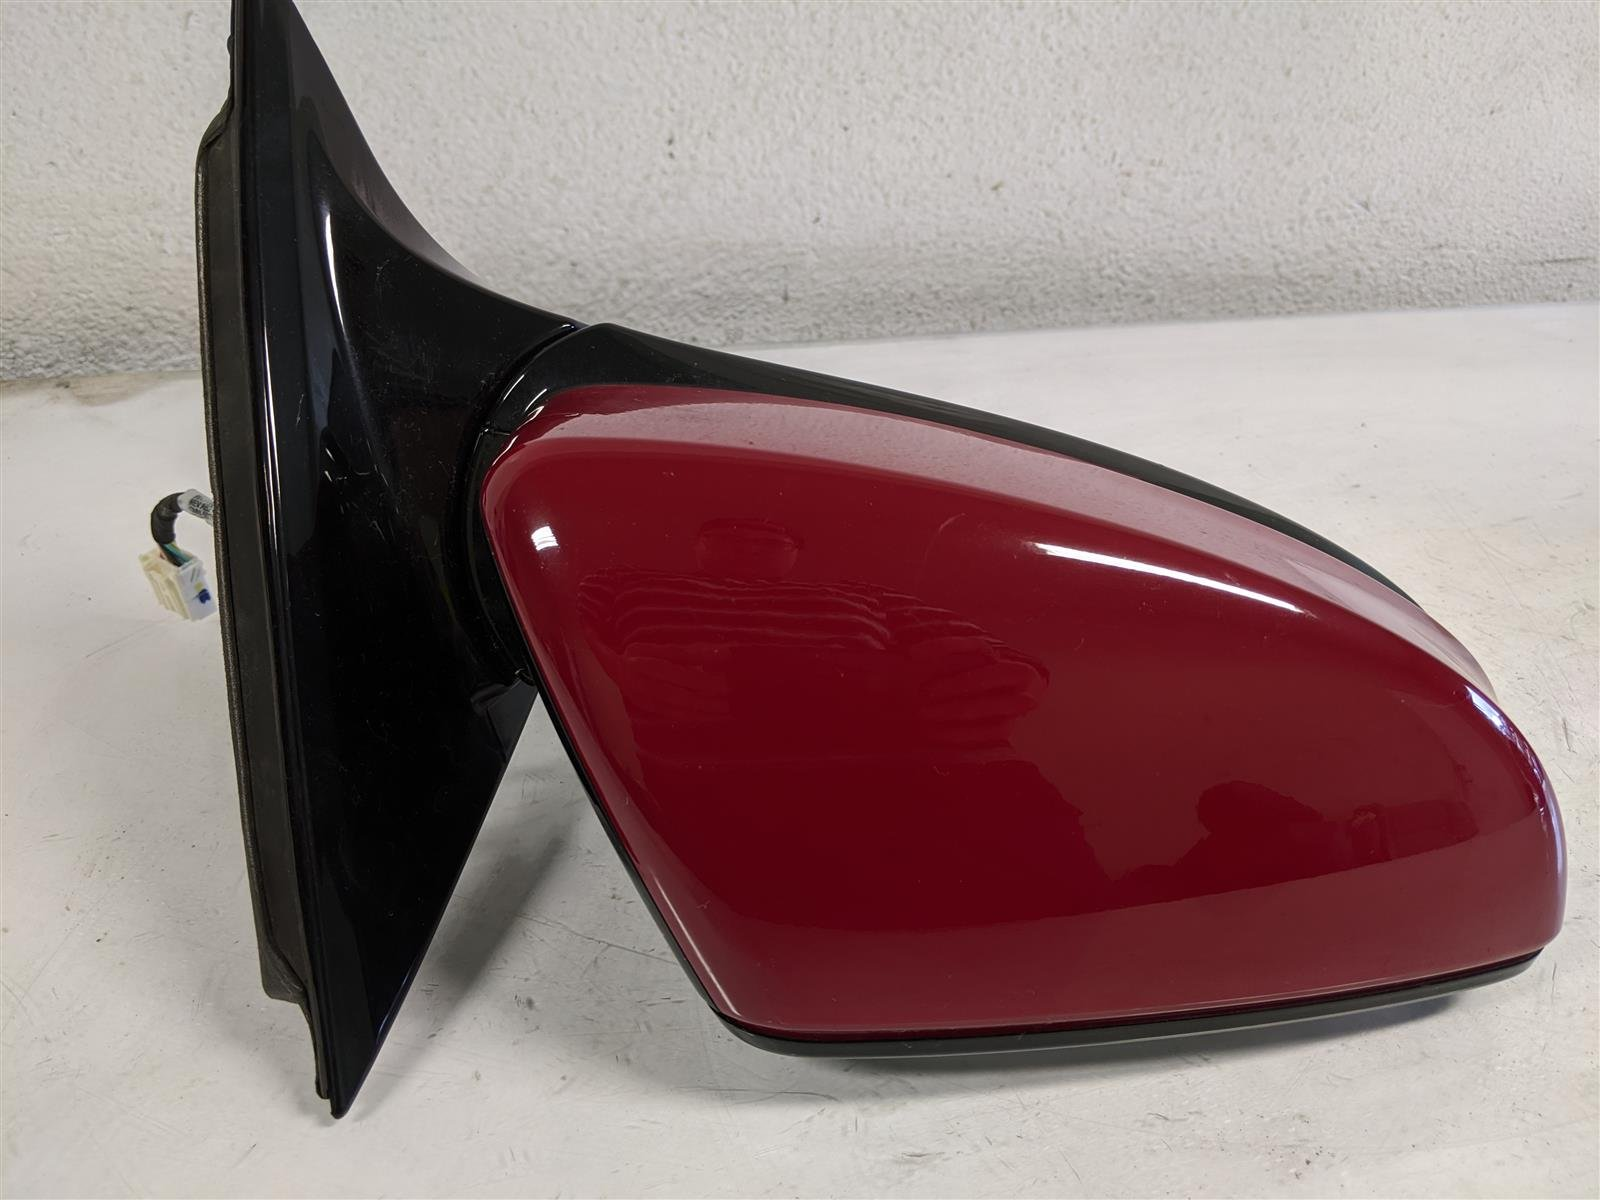 2017 Acura TLX Passenger Side View Mirror Red Replacement